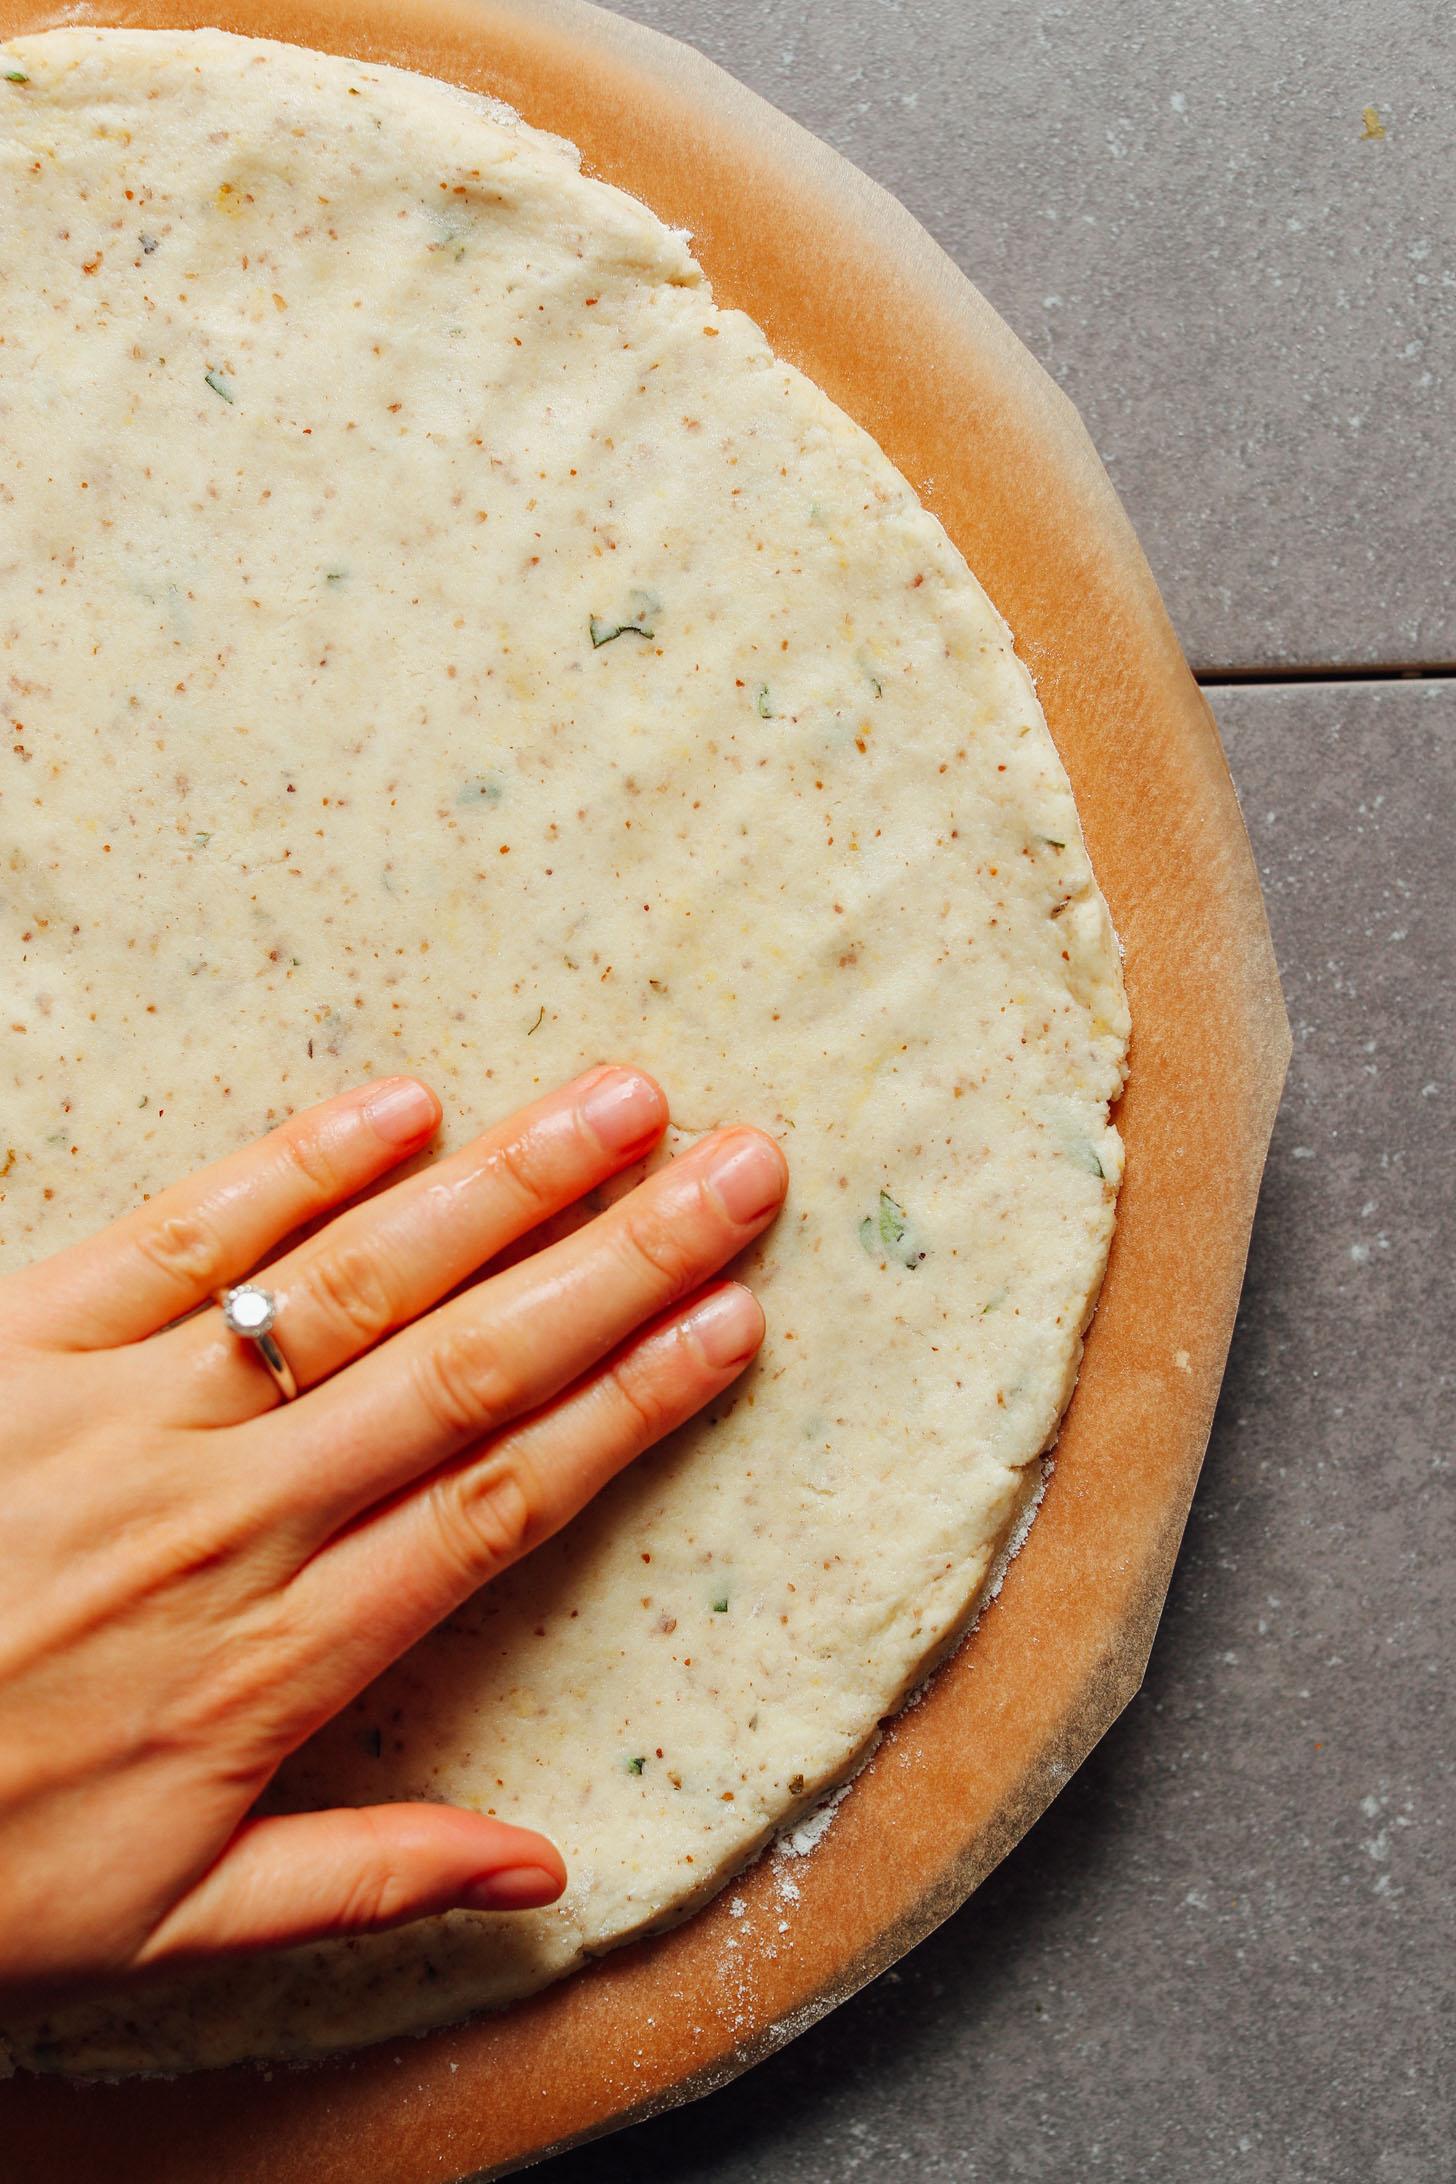 Flattening out the dough for our vegan Gluten-Free Pizza Crust